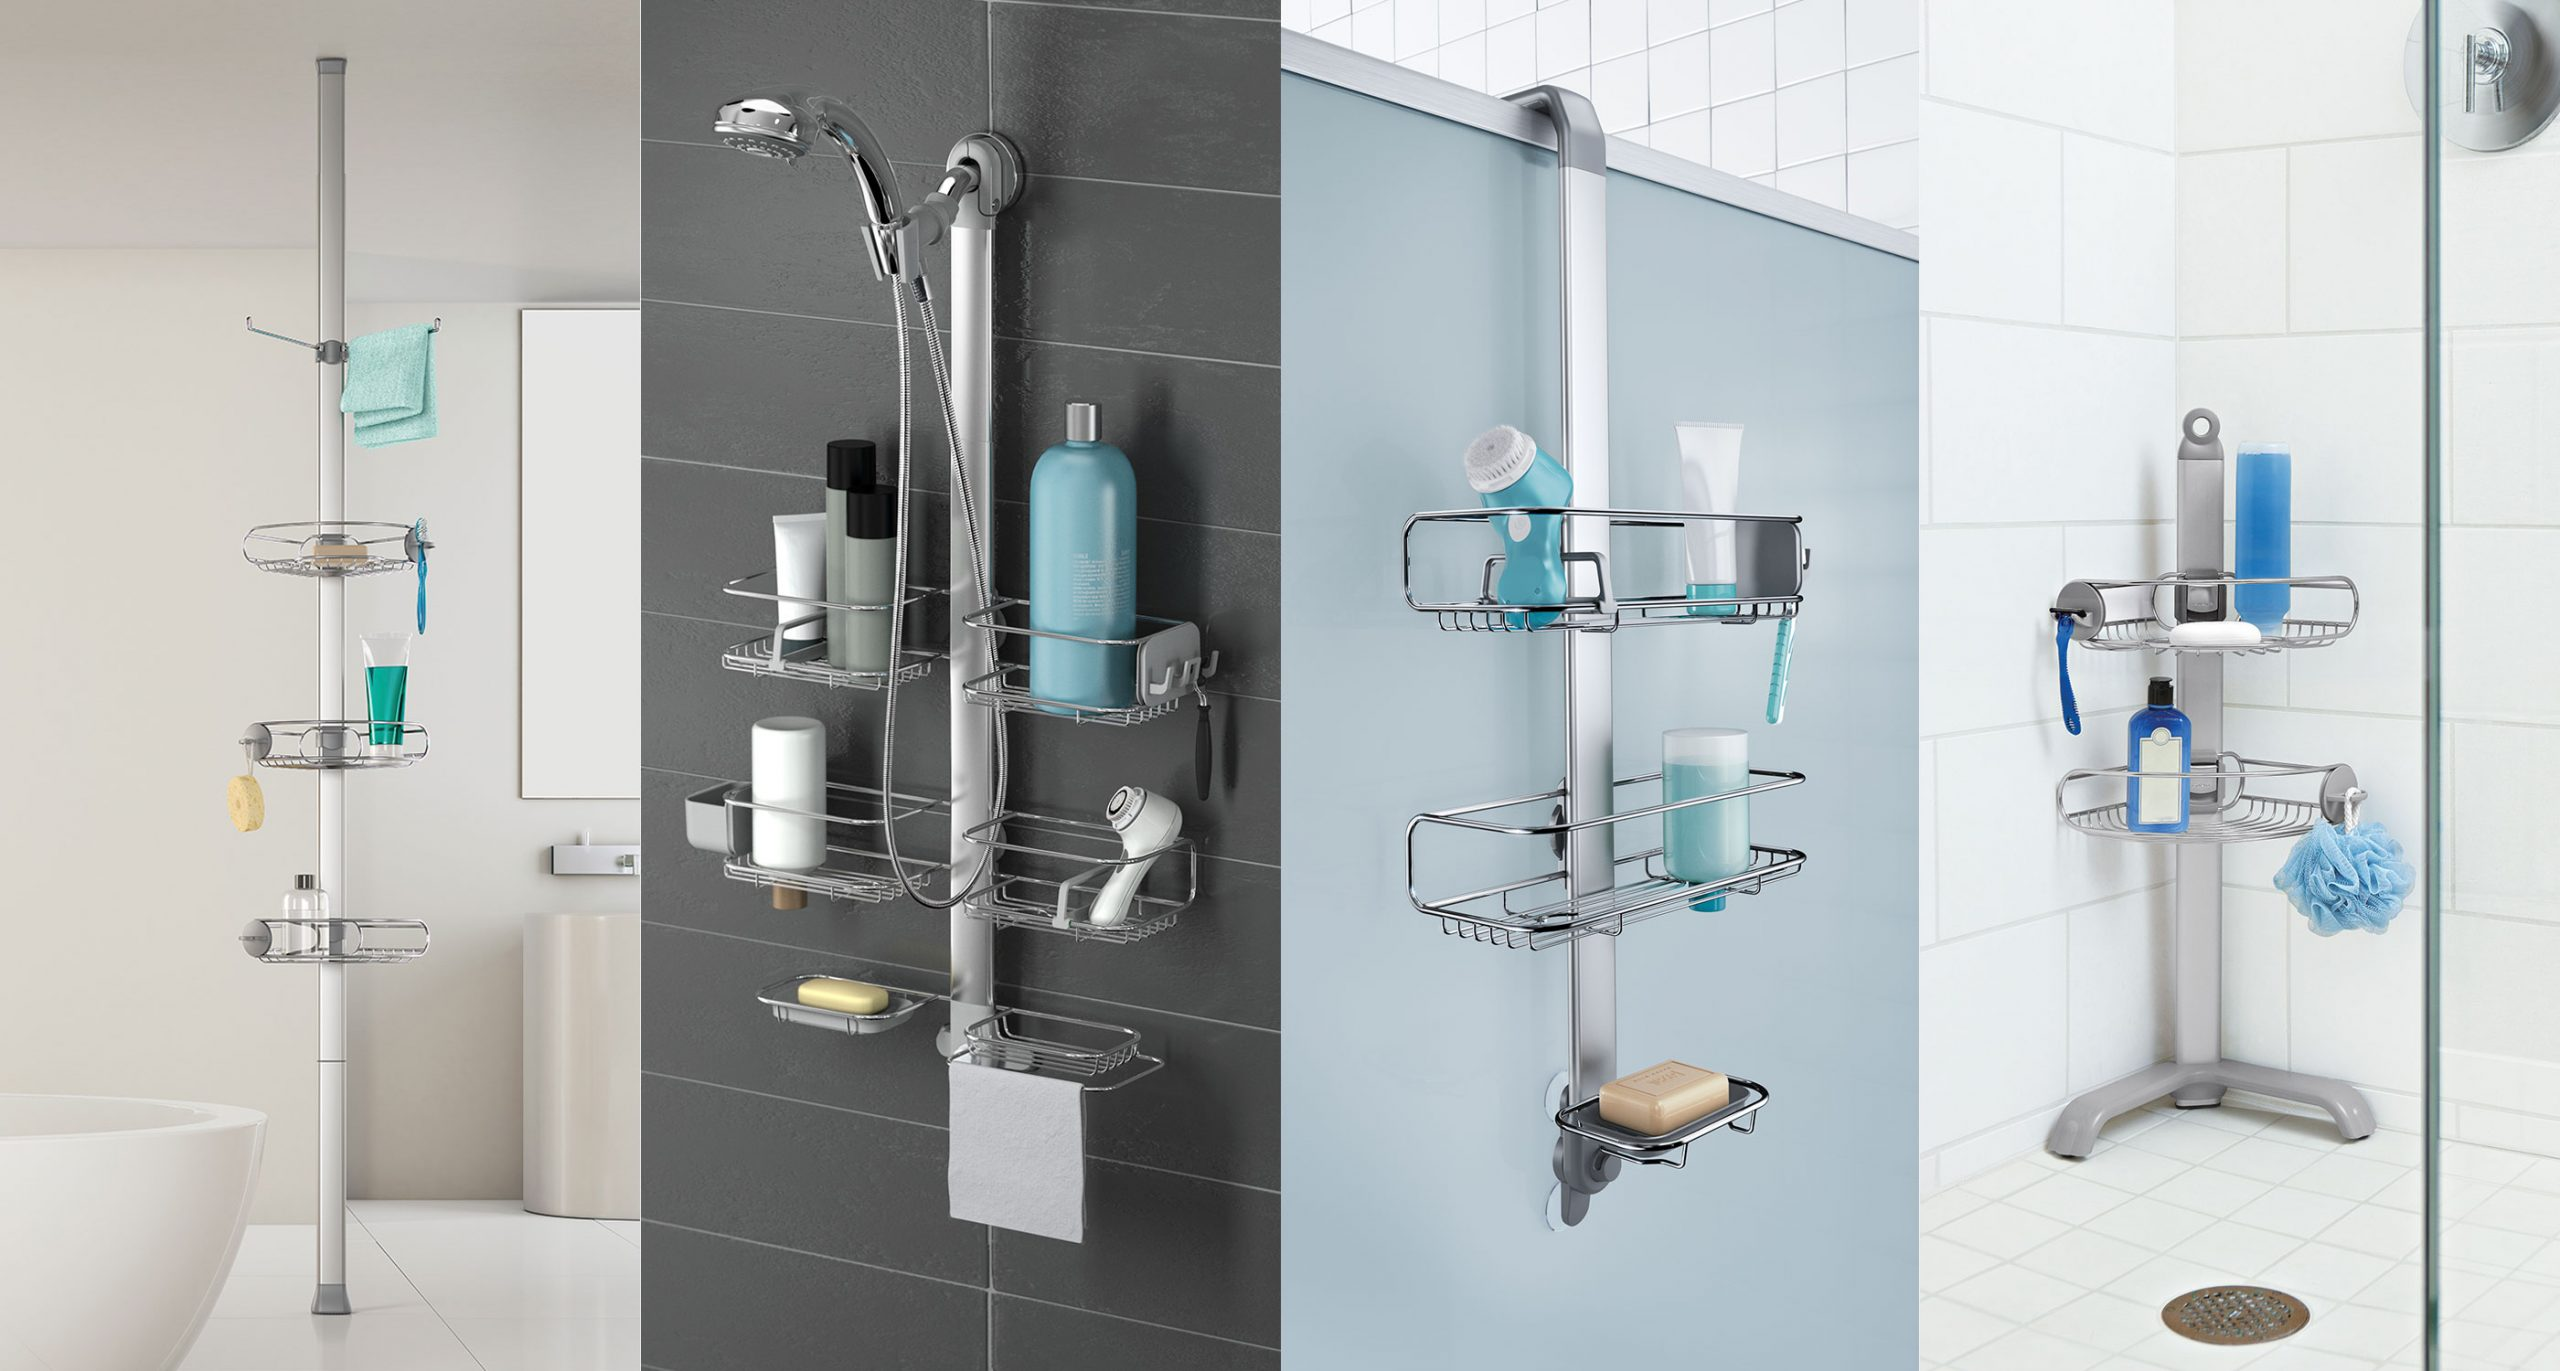 Top 10 Best Shower Caddy for College Students Comparison